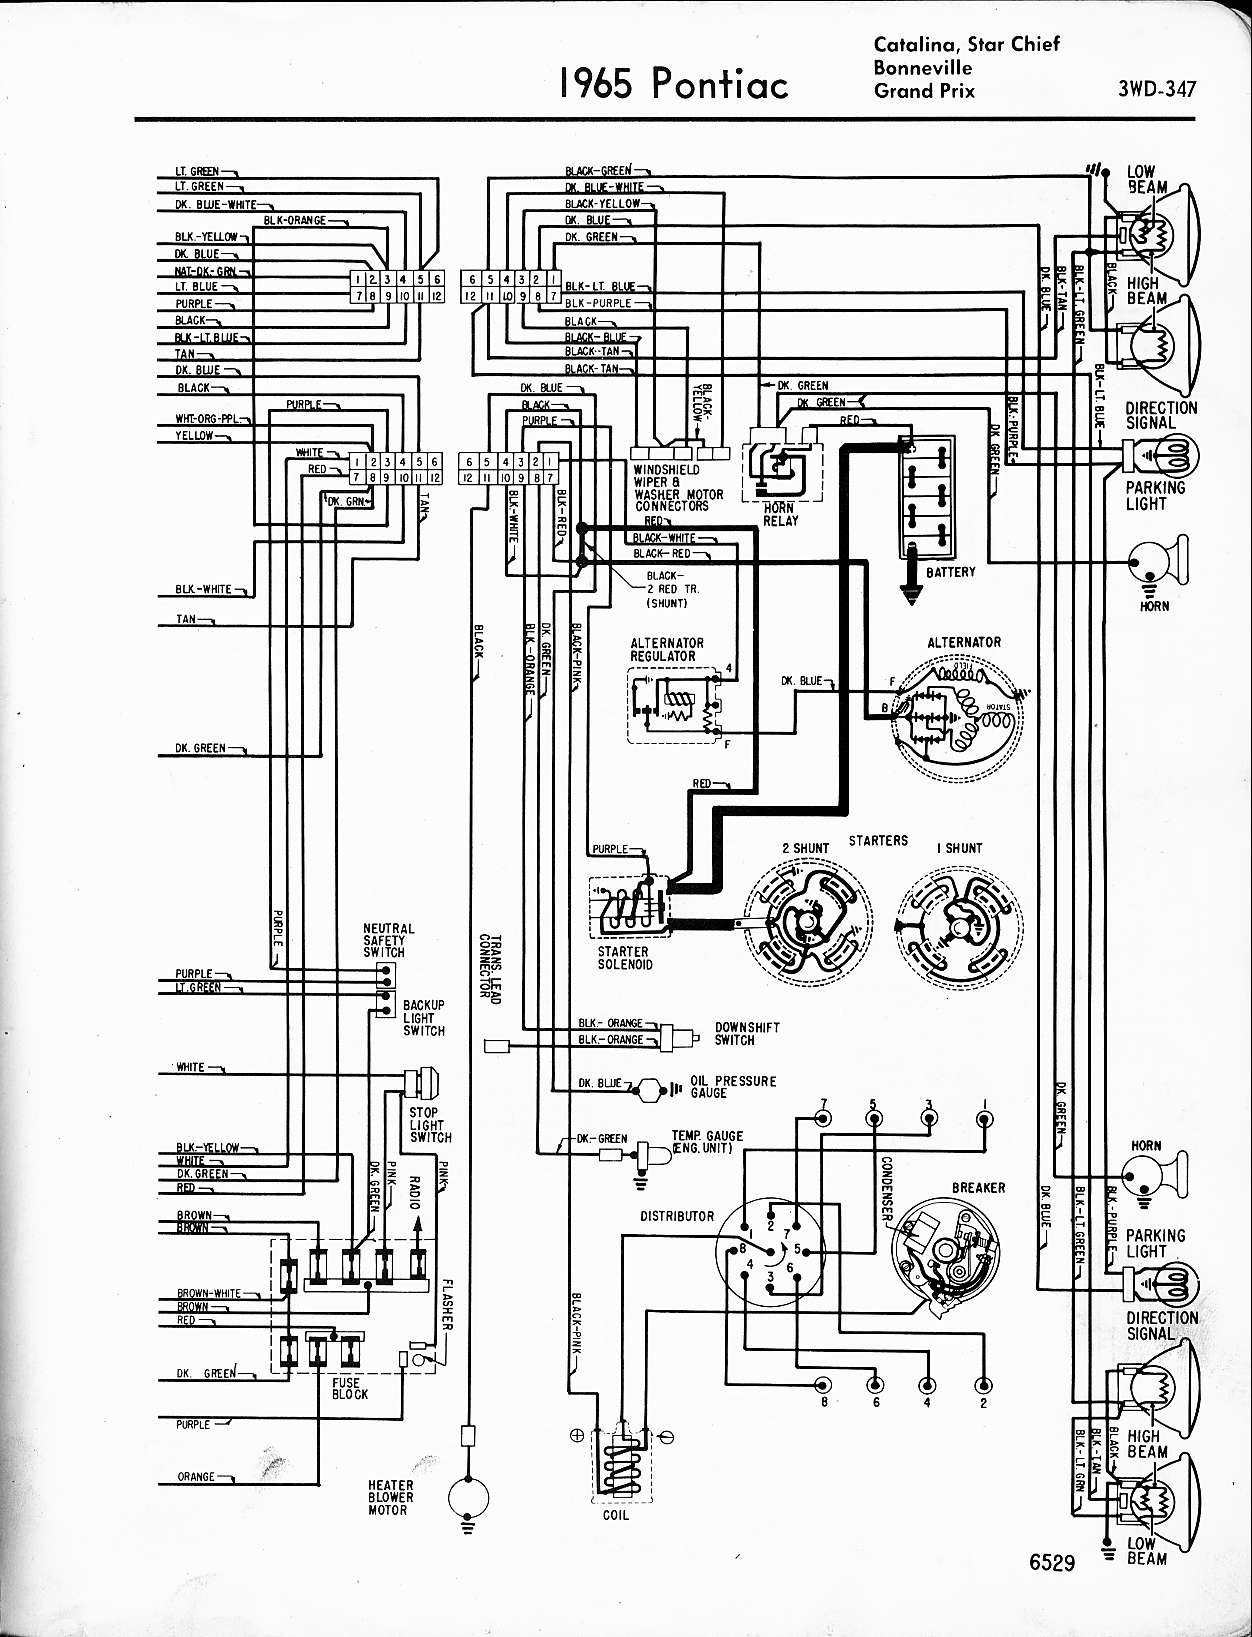 MWire5765 347 pontiac wiring diagrams pontiac grand prix wiring diagrams \u2022 free pontiac grand prix wiring diagram at bayanpartner.co